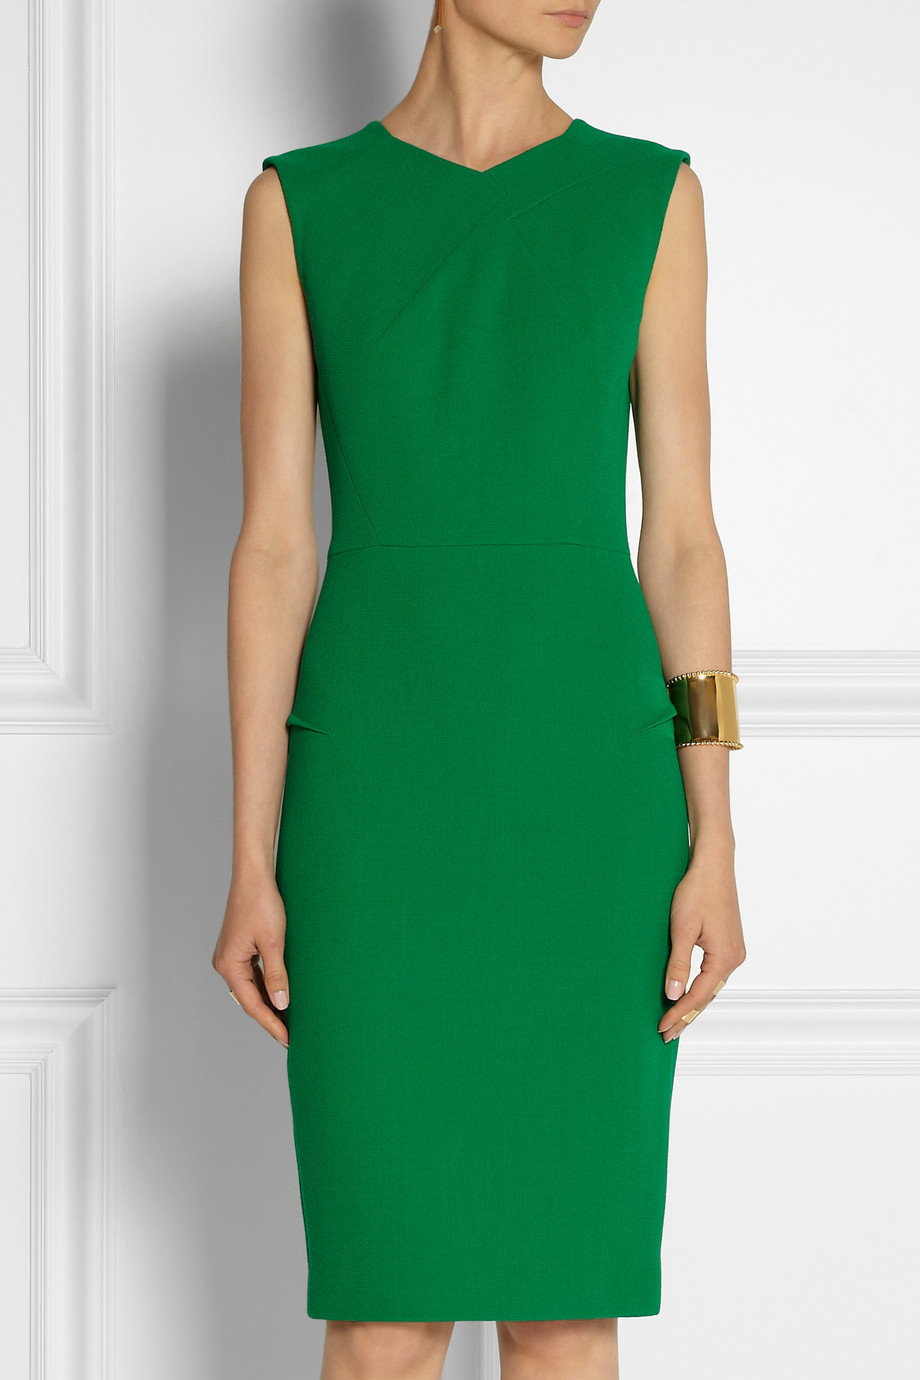 Roland Mouret Sesia Double Faced Wool Crepe Dress In Green